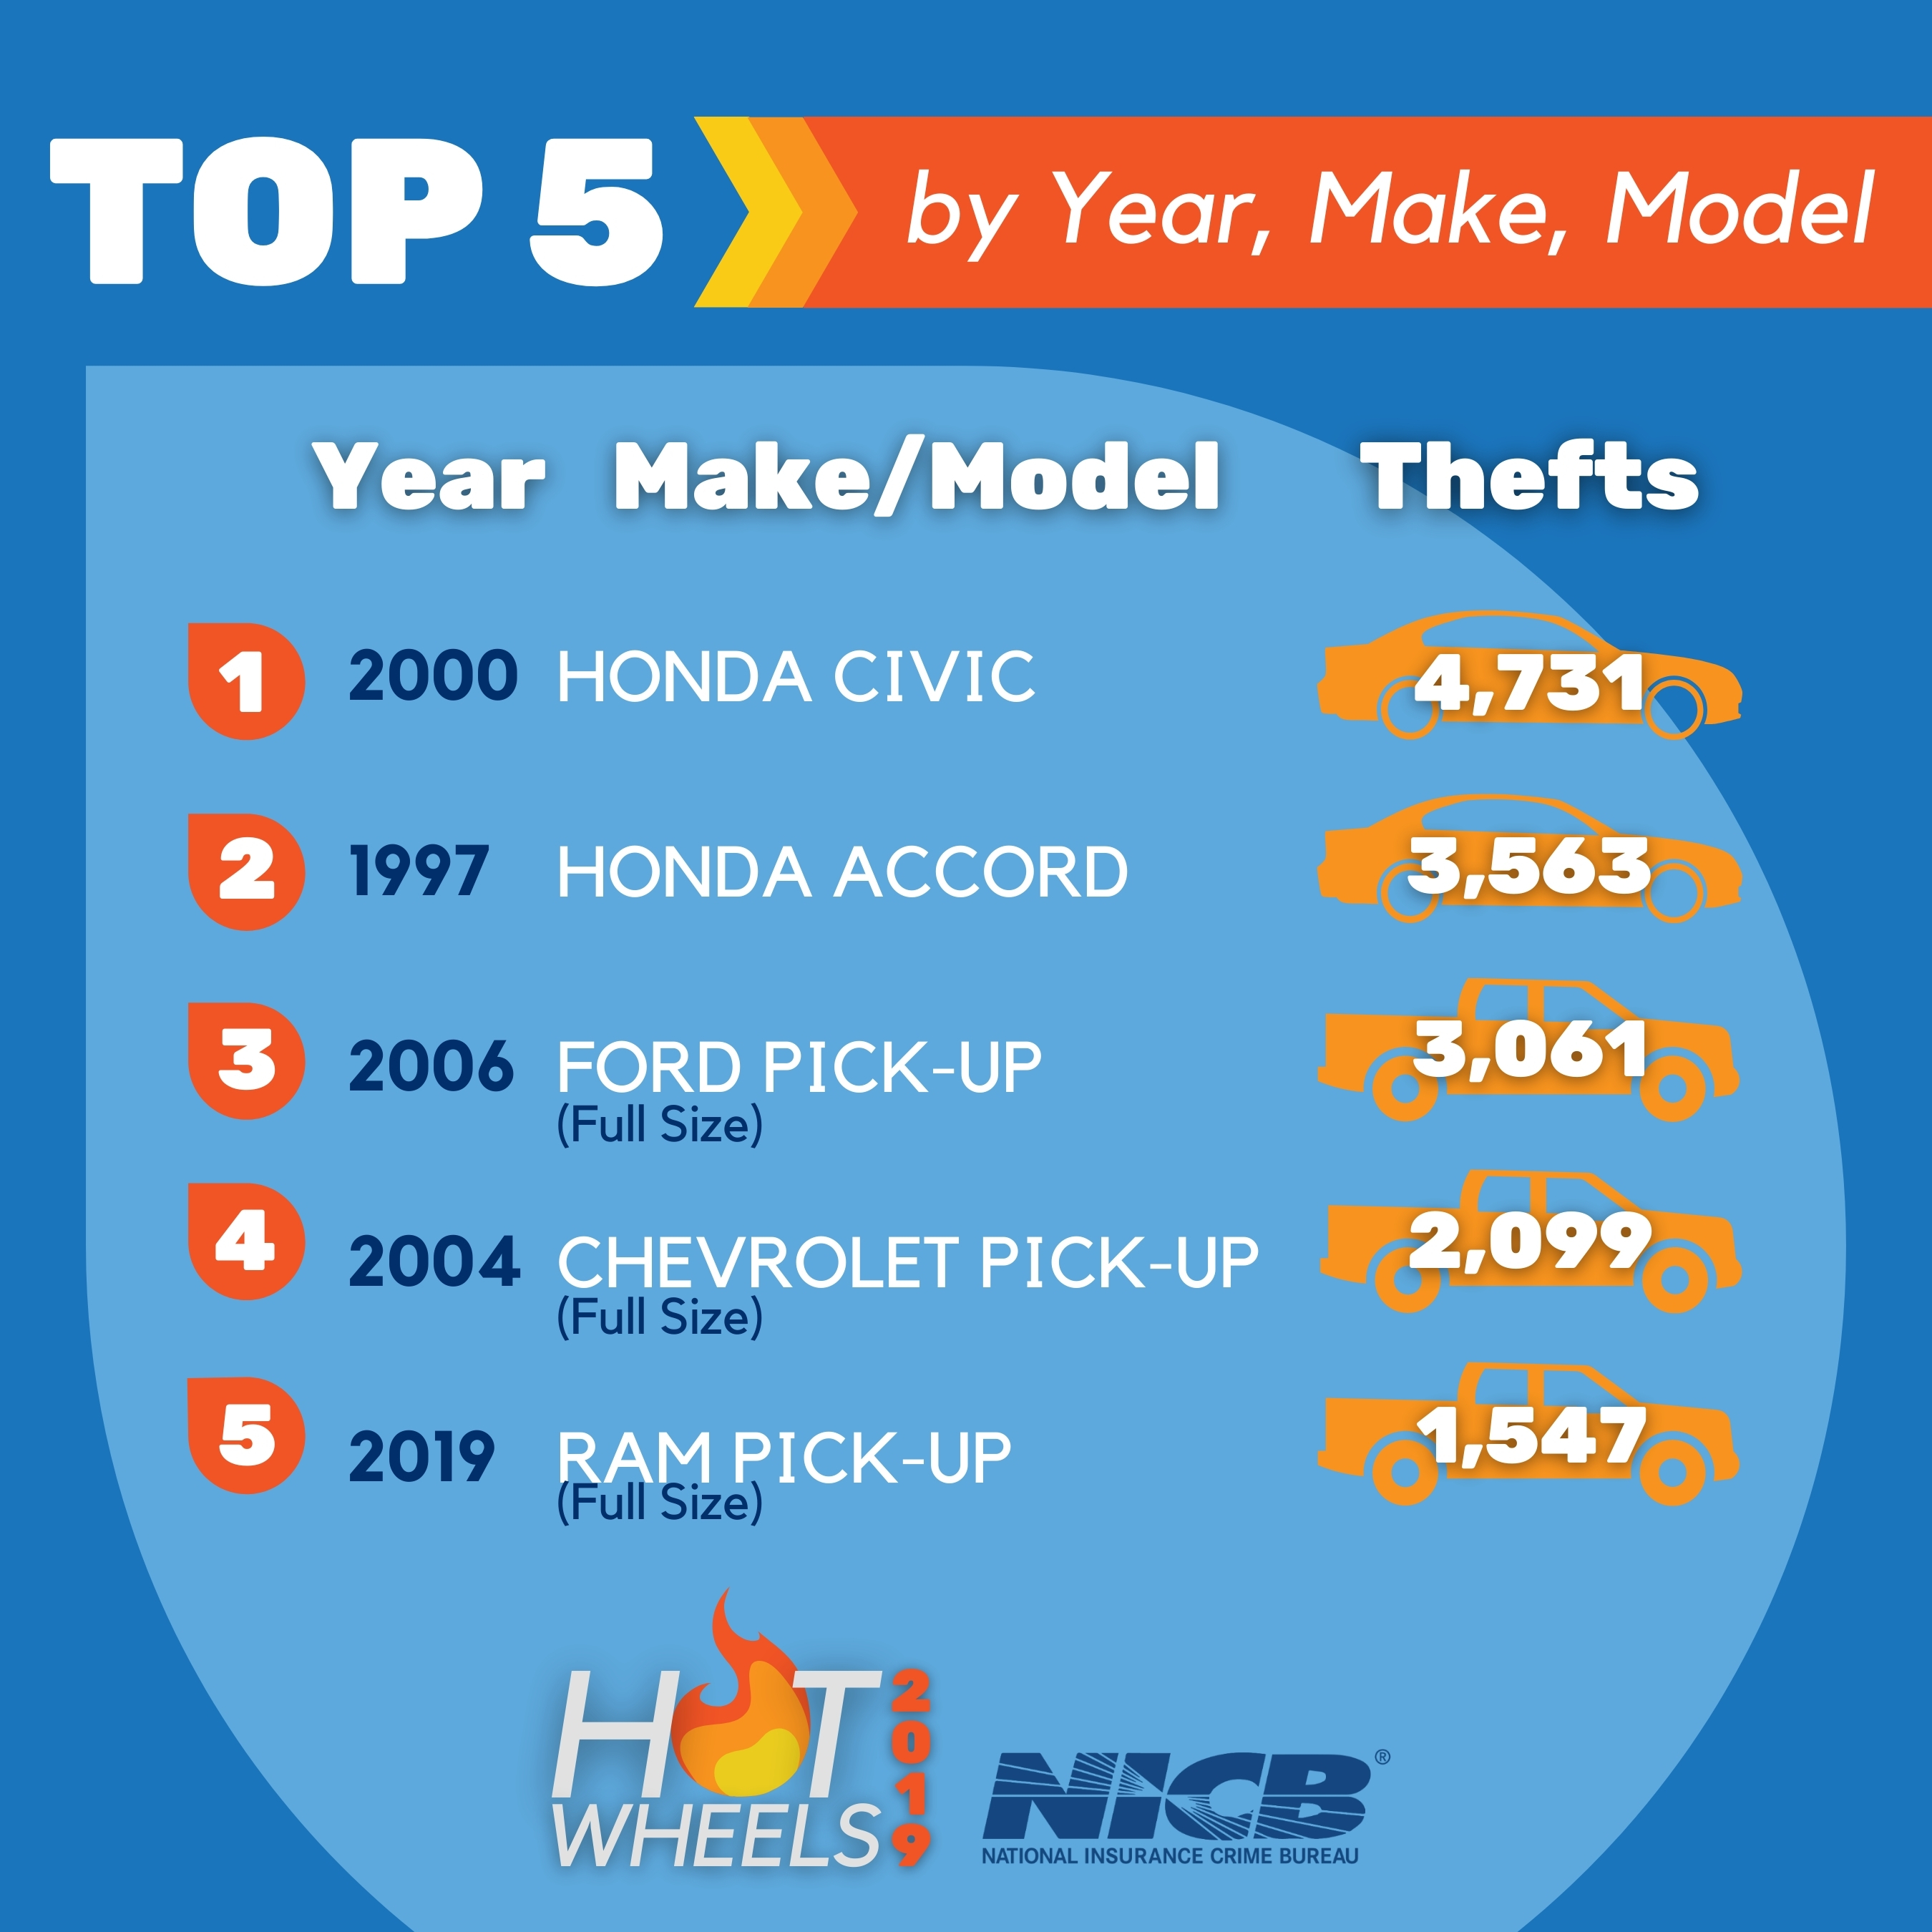 Hot Wheels 2019   Top 5 Most Stolen by Year, Make and Model